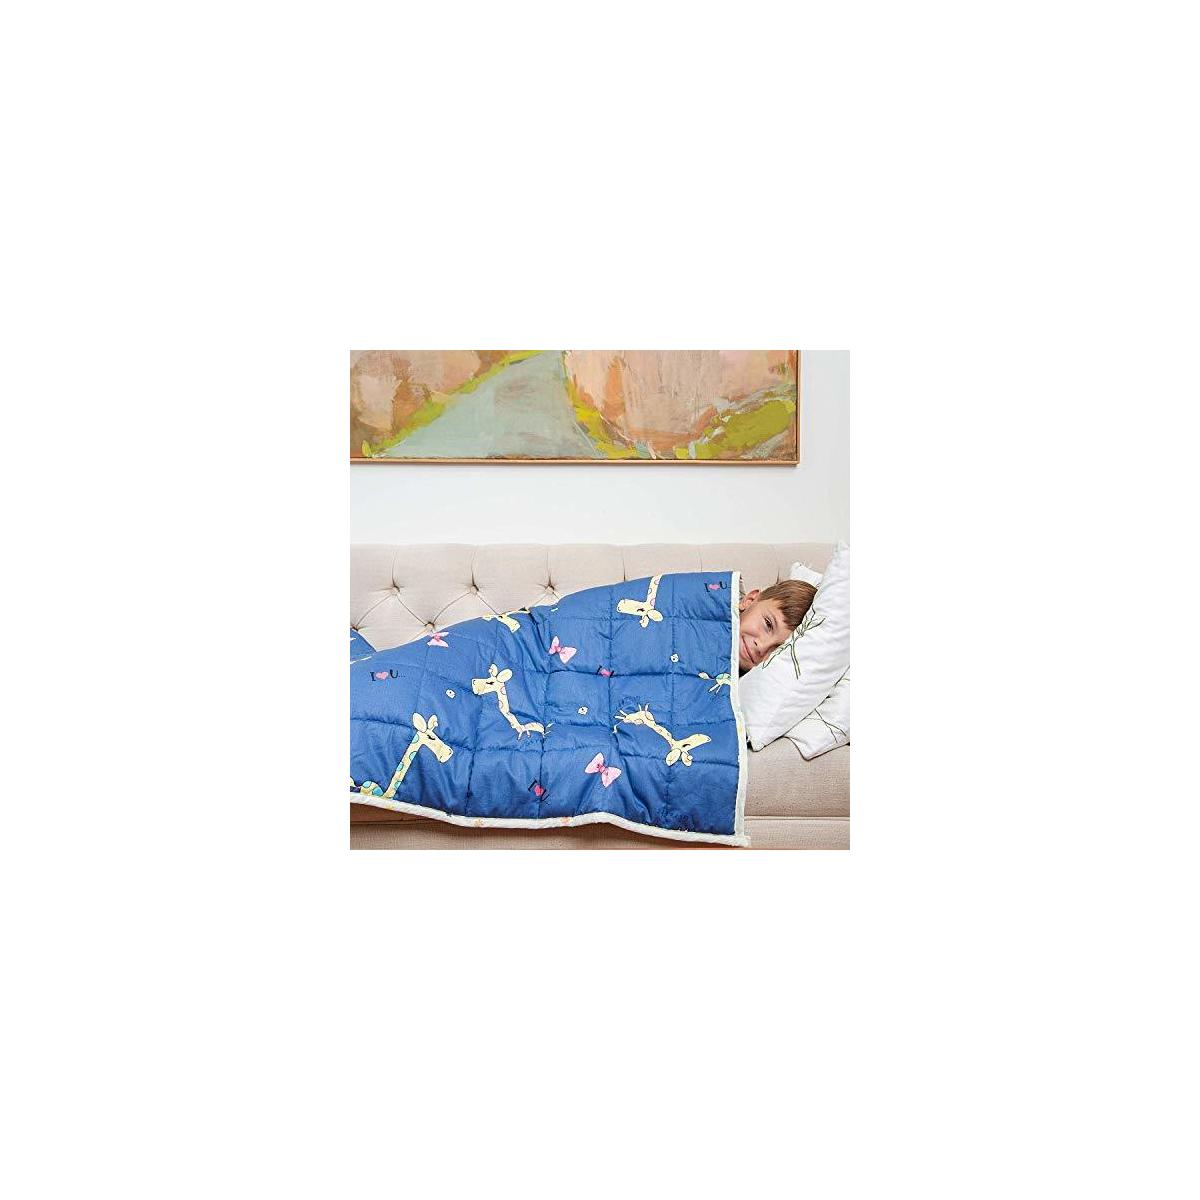 Tully Karessa Y36-5L 3.0 Weighted Blanket with Glass Beads, 36